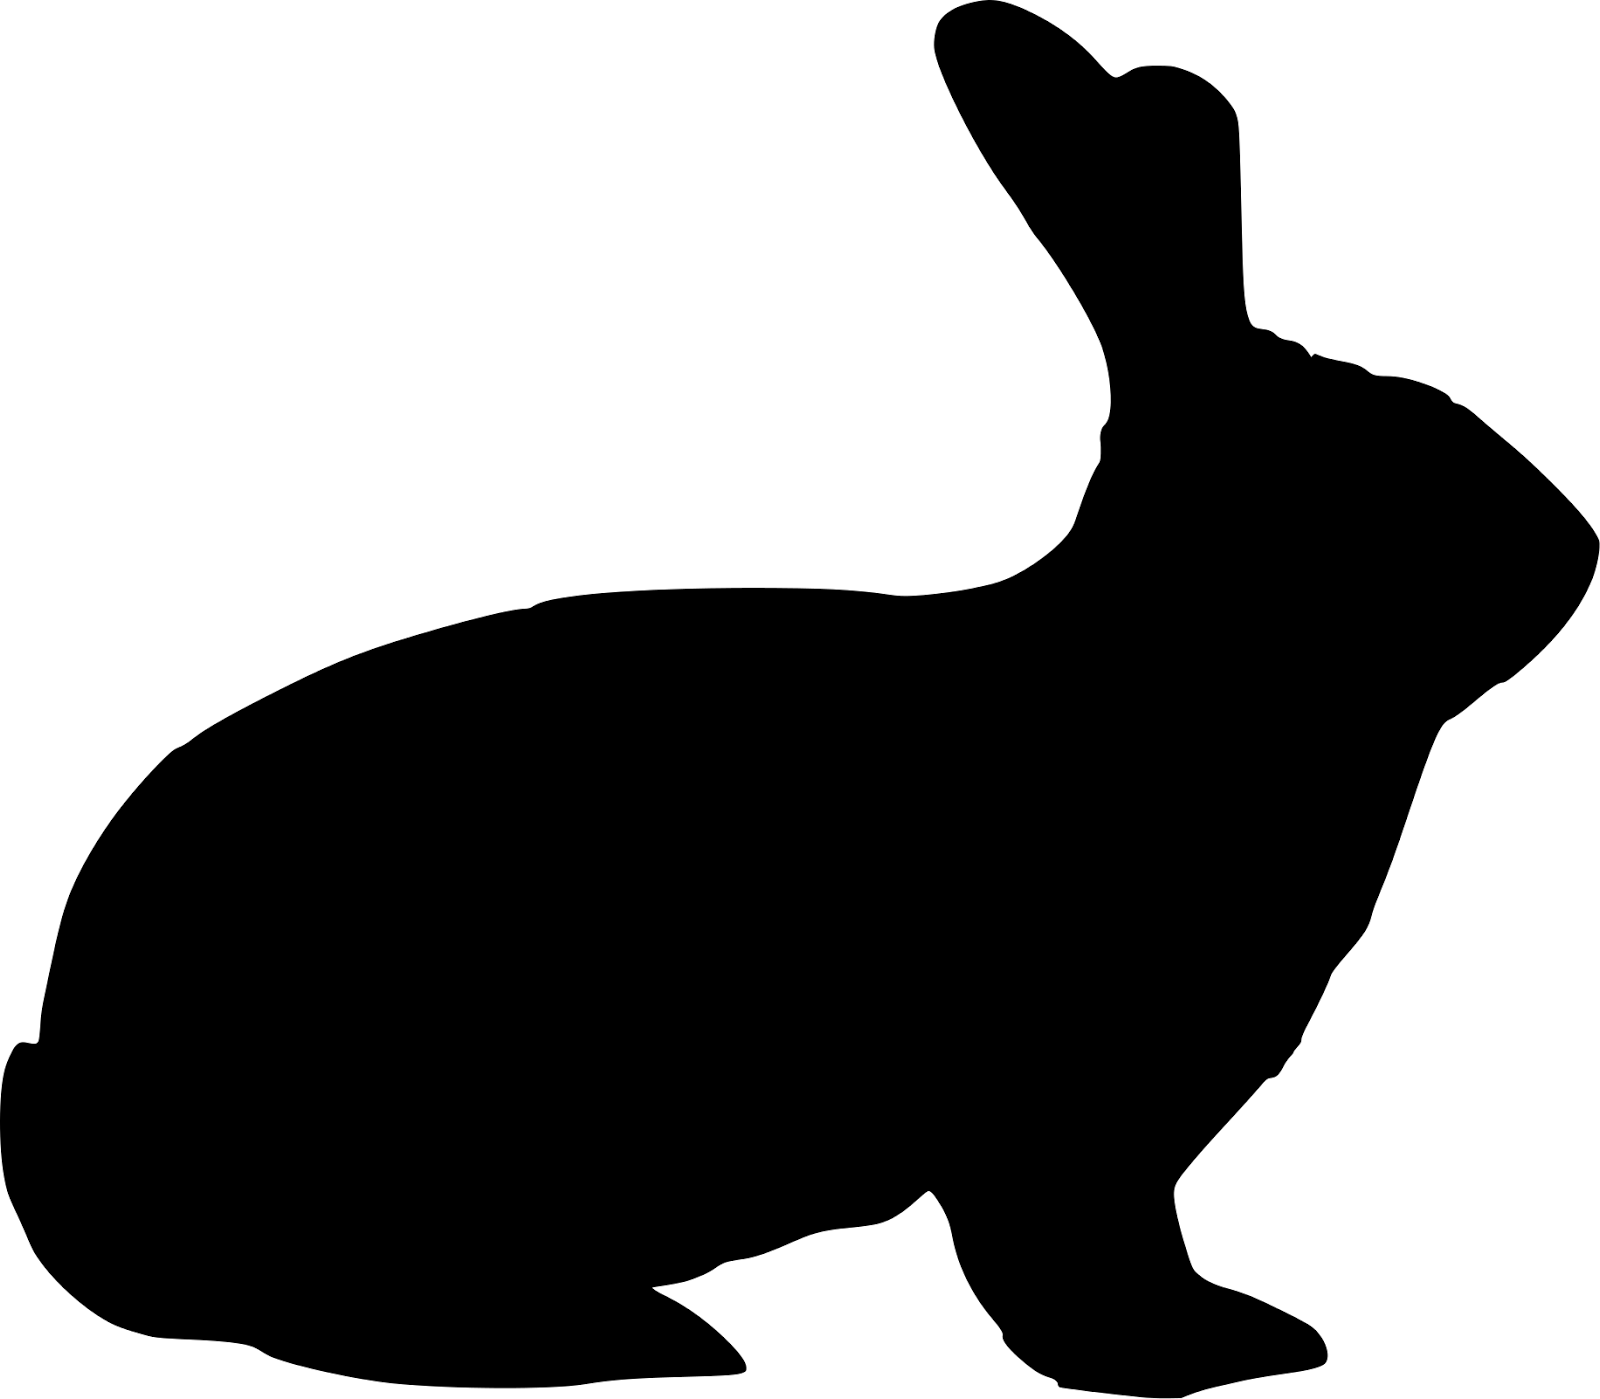 Rabbit Silhouette Clipart - Clipart Kid